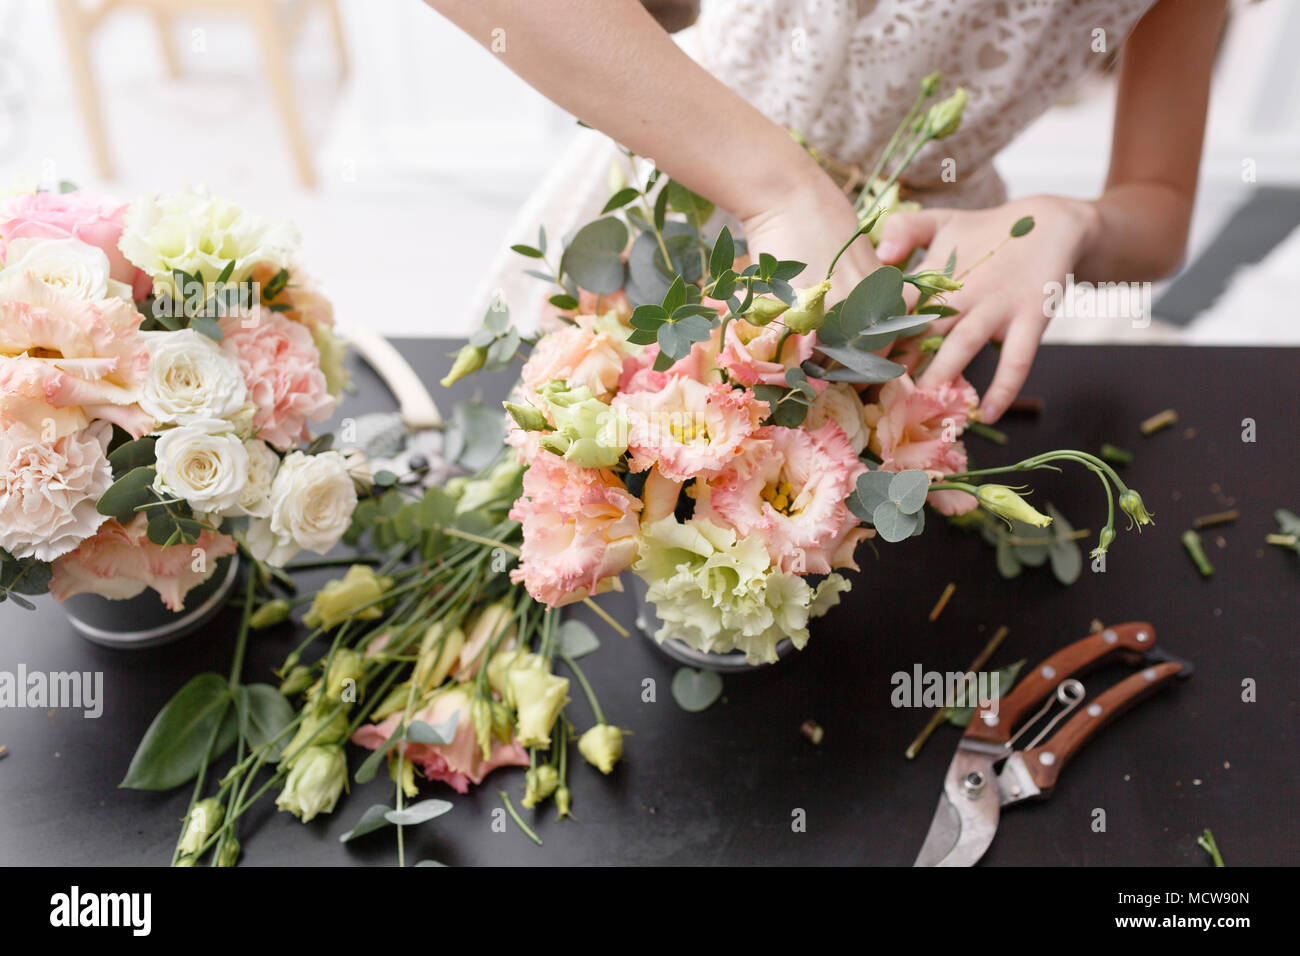 Master class on making bouquets for kids. Spring bouquet in metal ornamental flowerpot. Learning flower arranging, making beautiful bouquets with your own hands - Stock Image